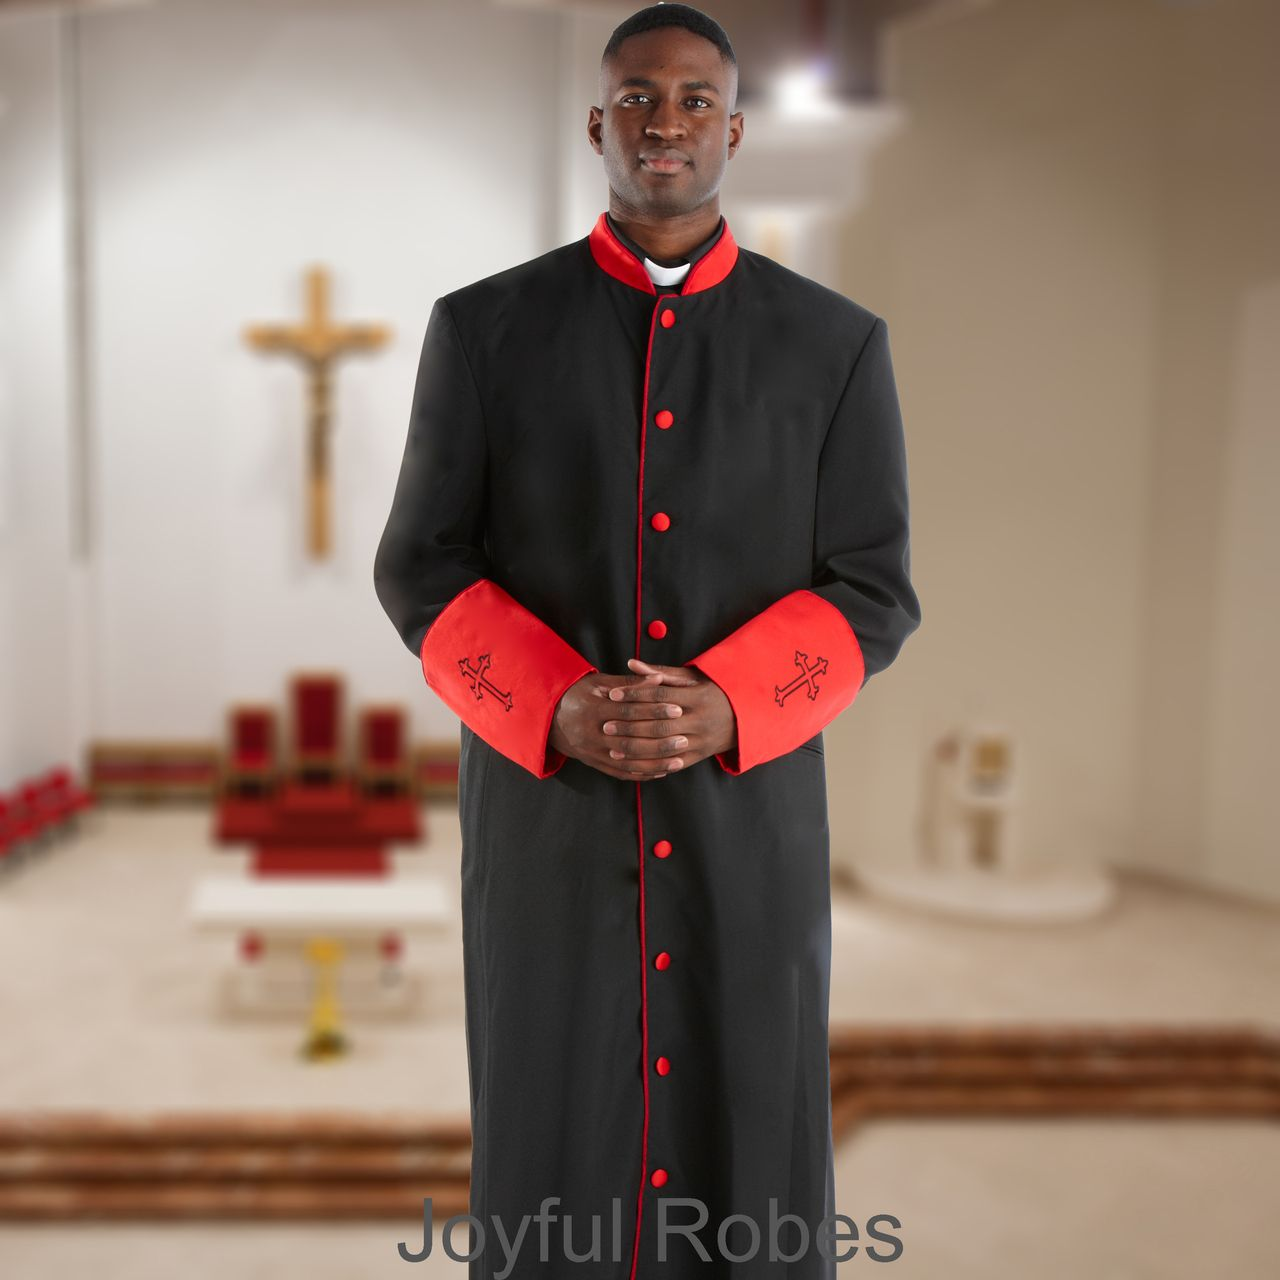 308 M. Men's Pastor/Clergy Robe - Black/Red Cuff